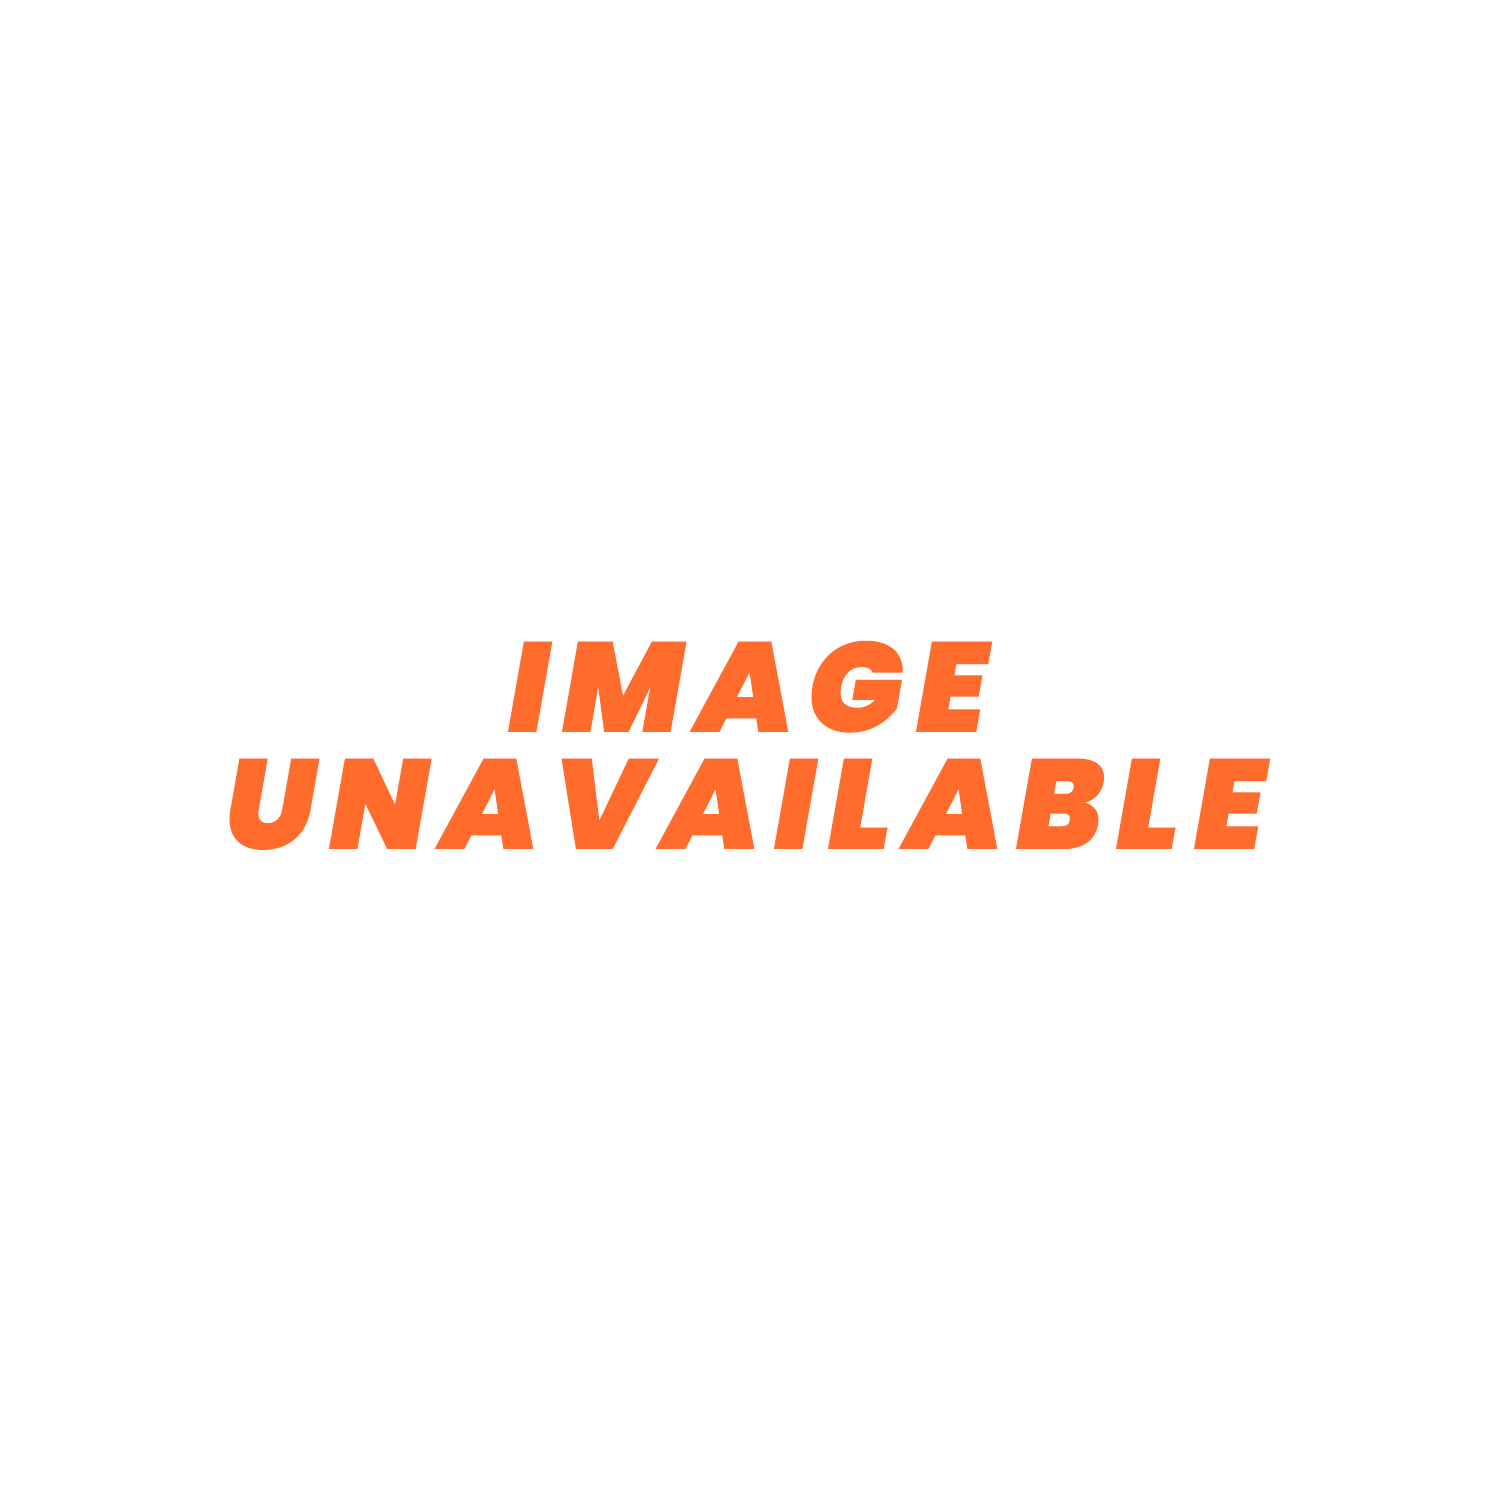 Sanden SD7H15 7933 155cc Compressor 2G 'A' Horizontal 132mm 24v (Rotolock)